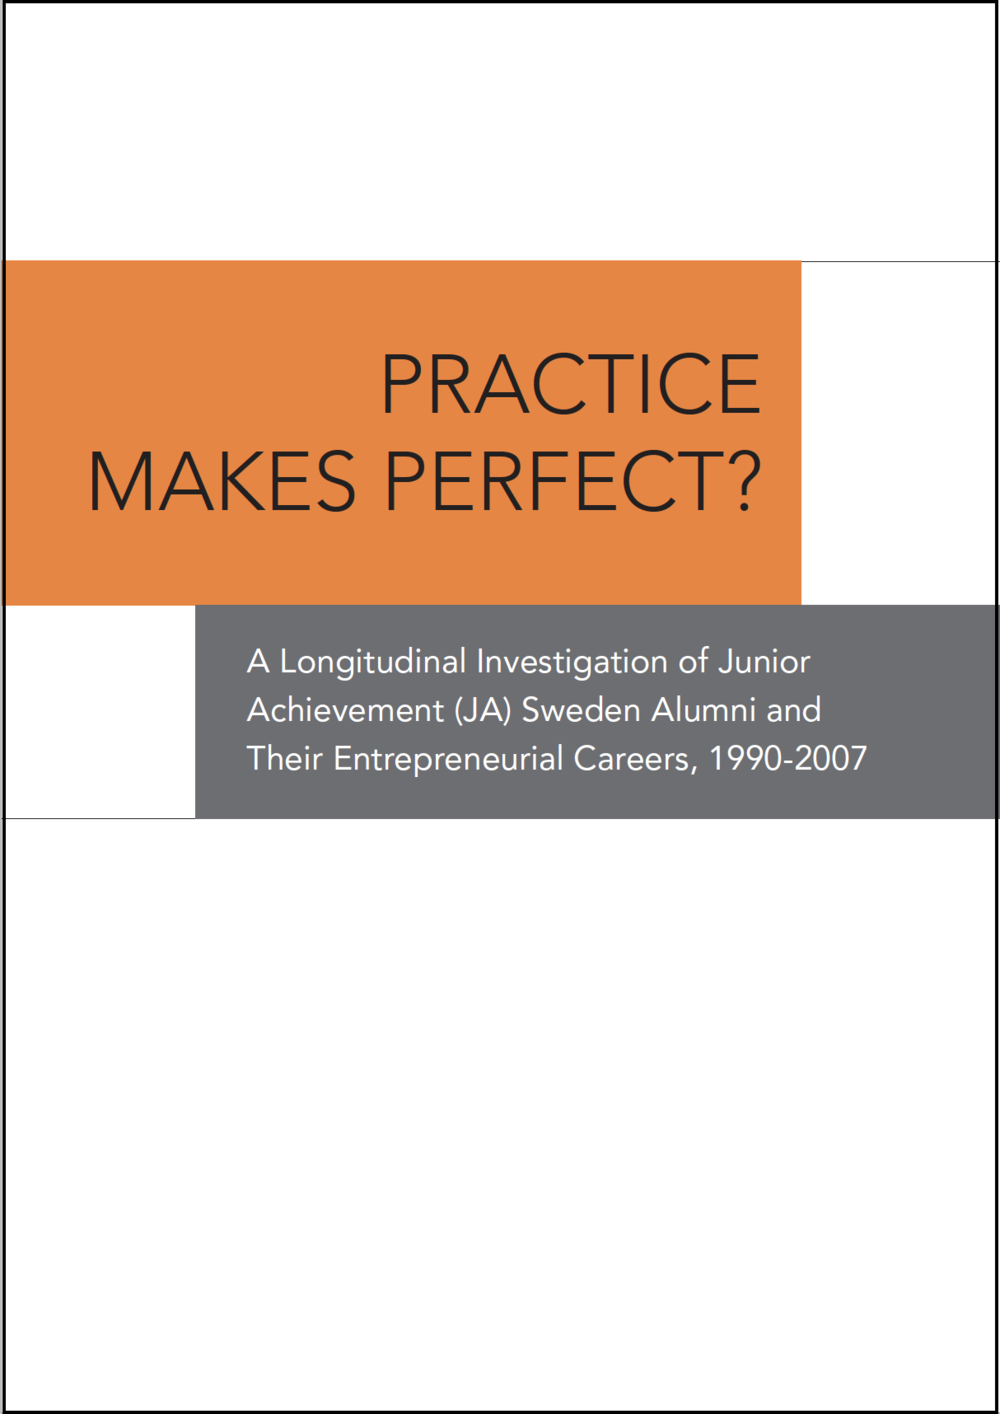 22-Practice Makes Perfect-A Longitudinal Investigation of Junior Achievement (JA) Sweden Alumni and Their Entrepreneurial Careers-cover.png